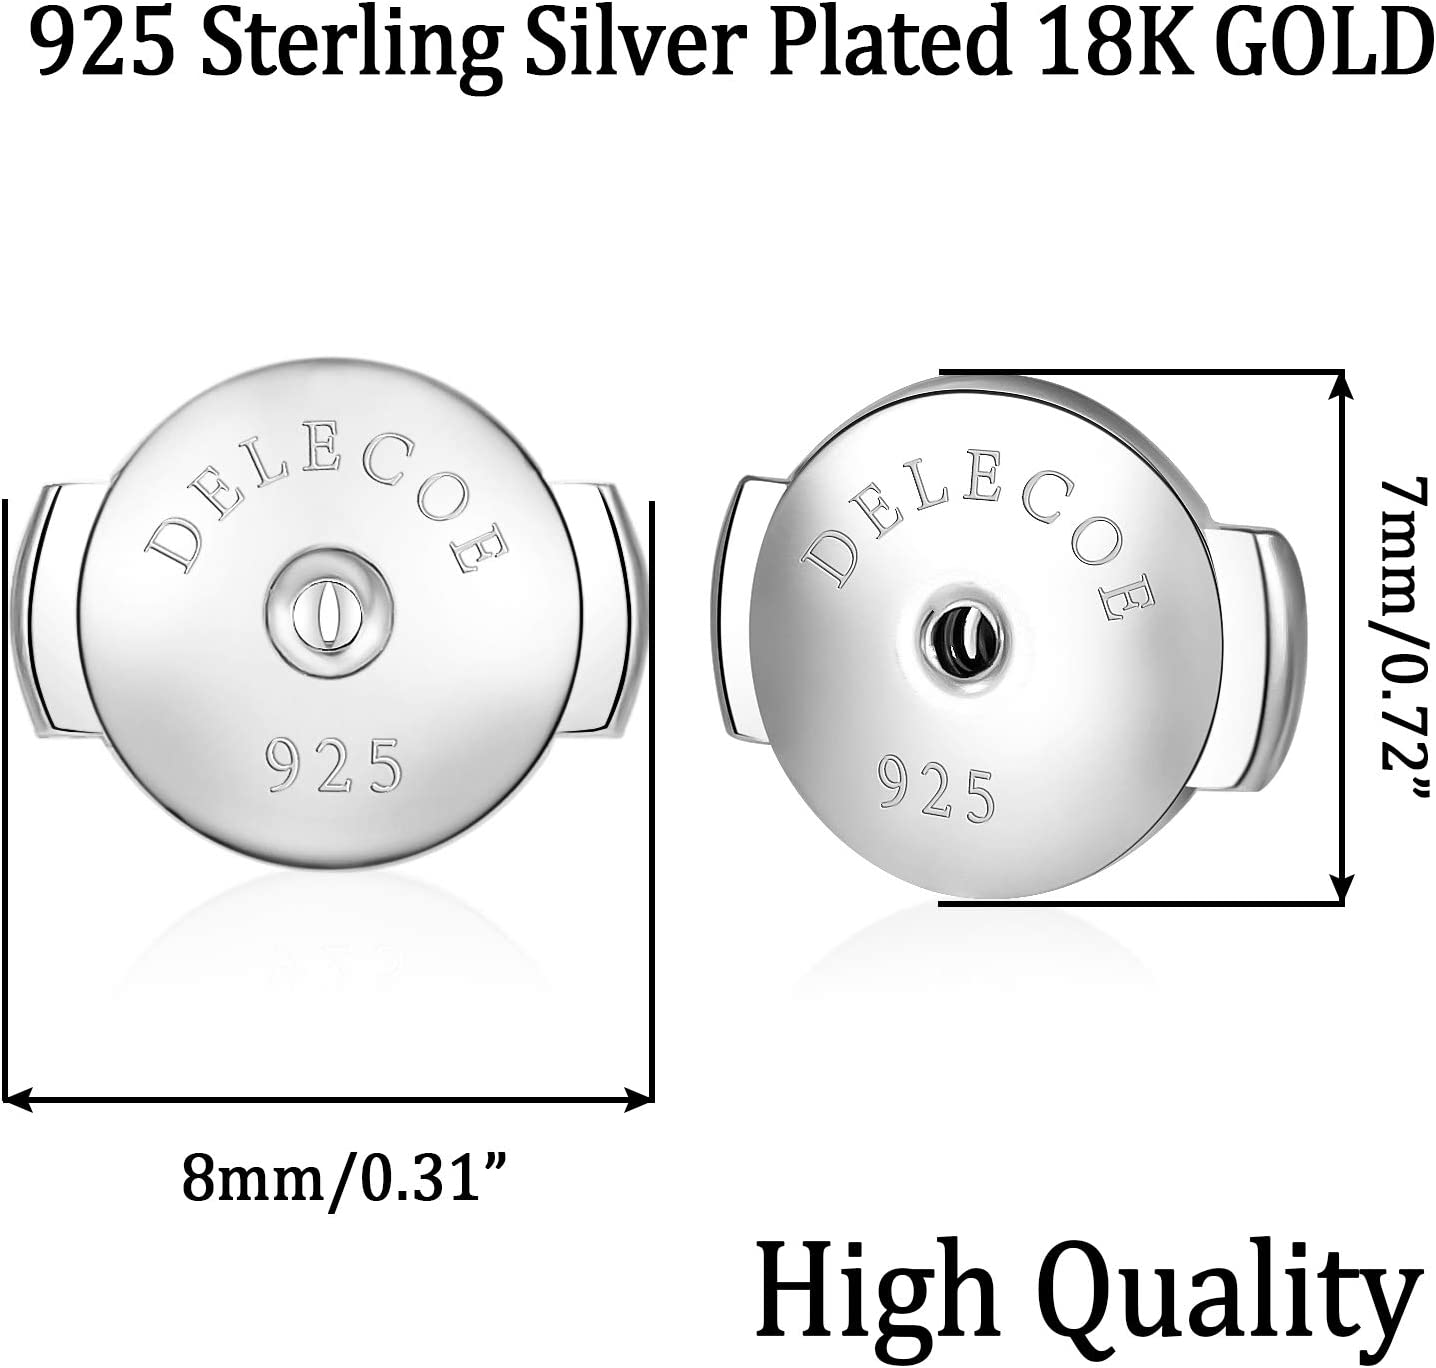 2 Pairs//4pcs 18K Gold Plated Secure Hypoallergenic Earring Backs for Diamond Studs 18K Yellow Gold No Fading Comfort Earring Backs DELECOE Sterling Silver Locking Earring Backs Replacements